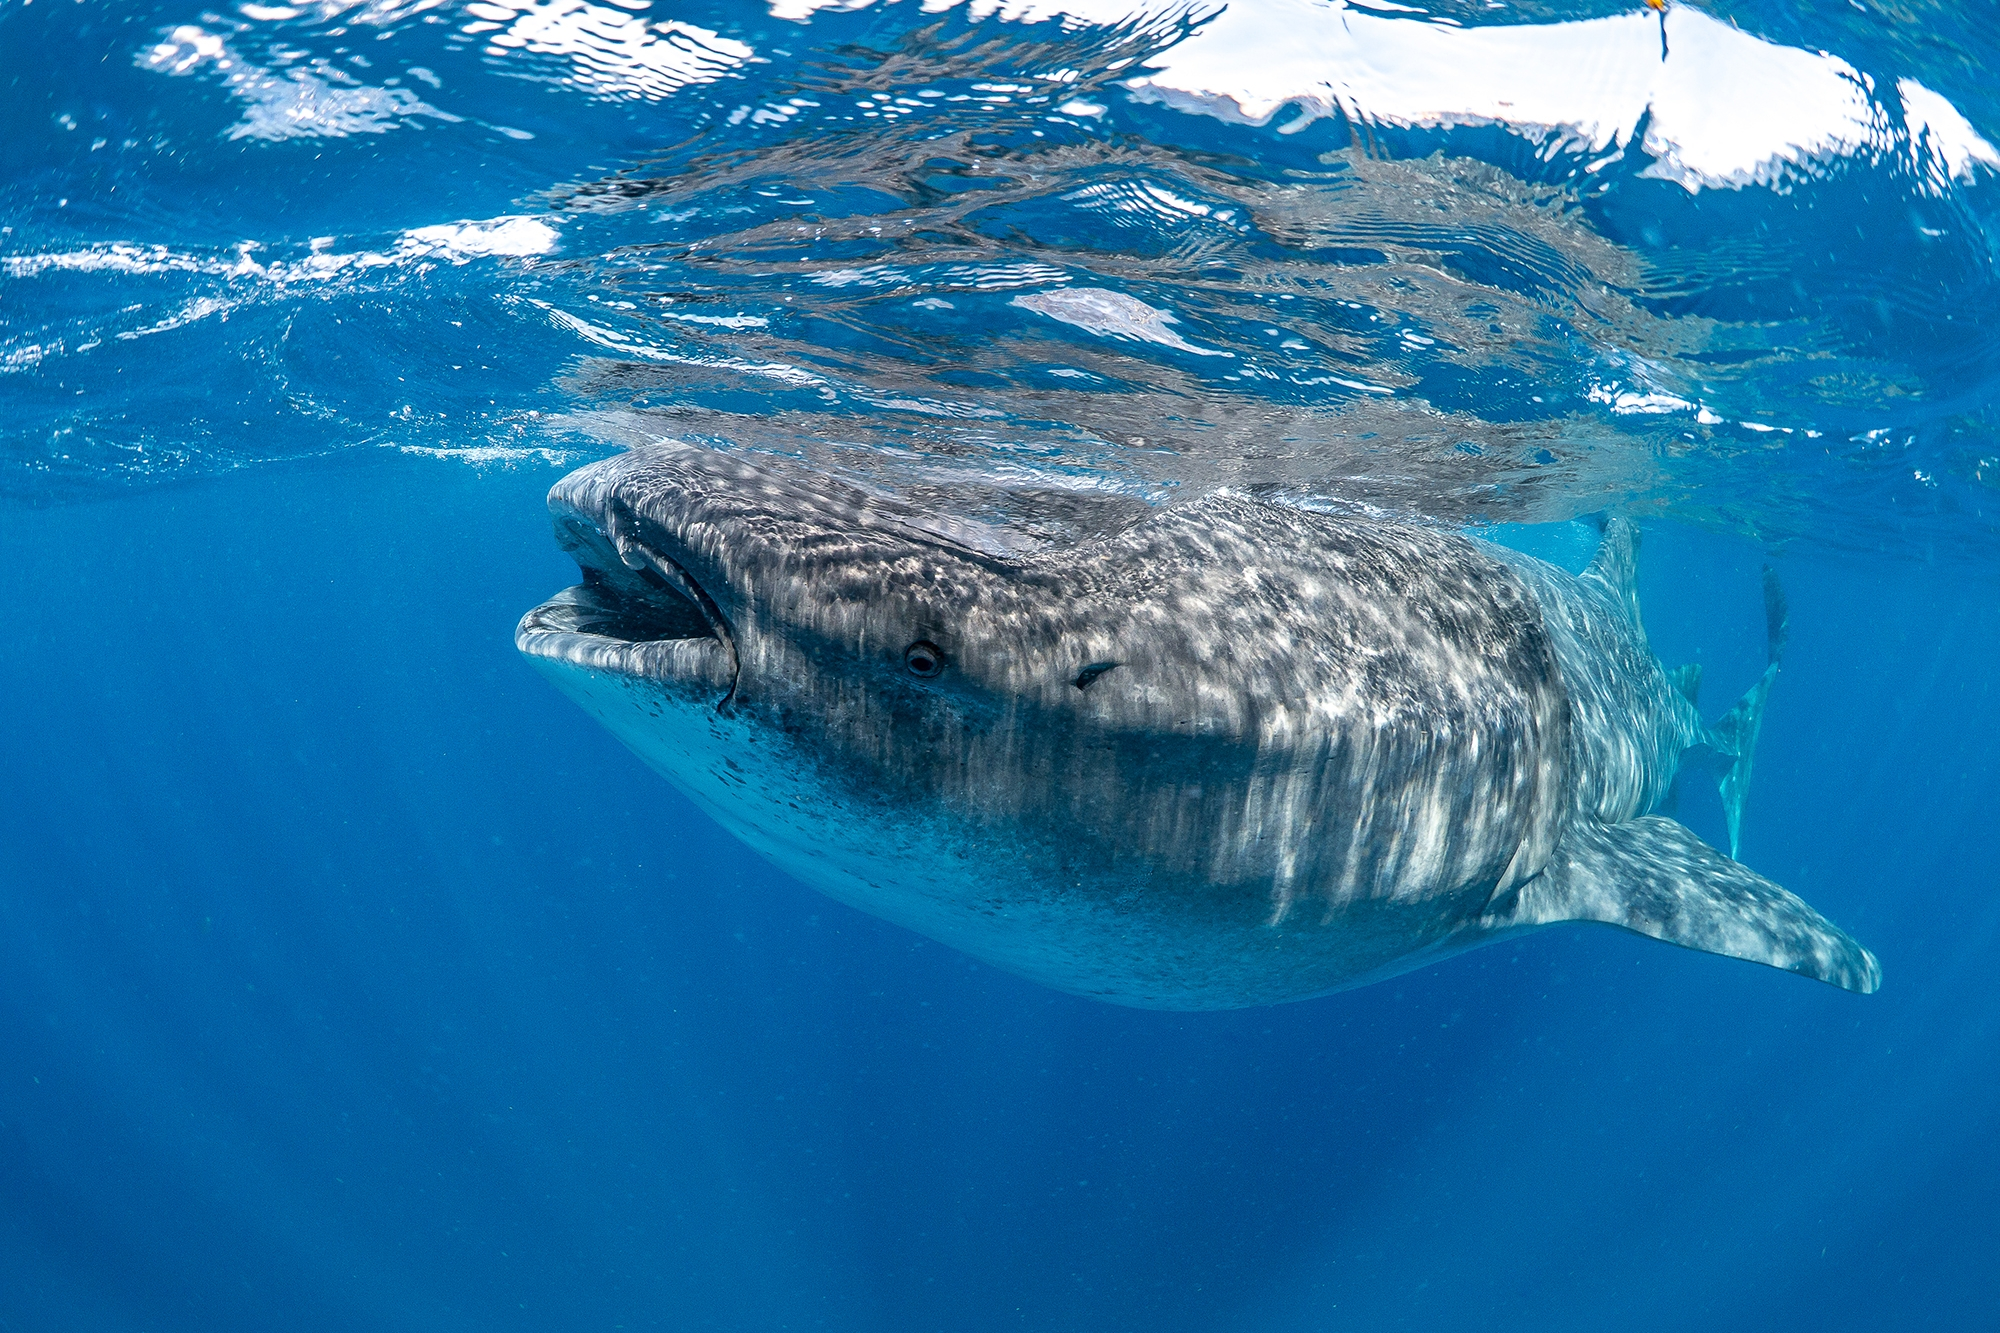 whaleshark in Isla Mujeres, Mexico CREDIT: SIMON J. PIERCE / coral reef image bank